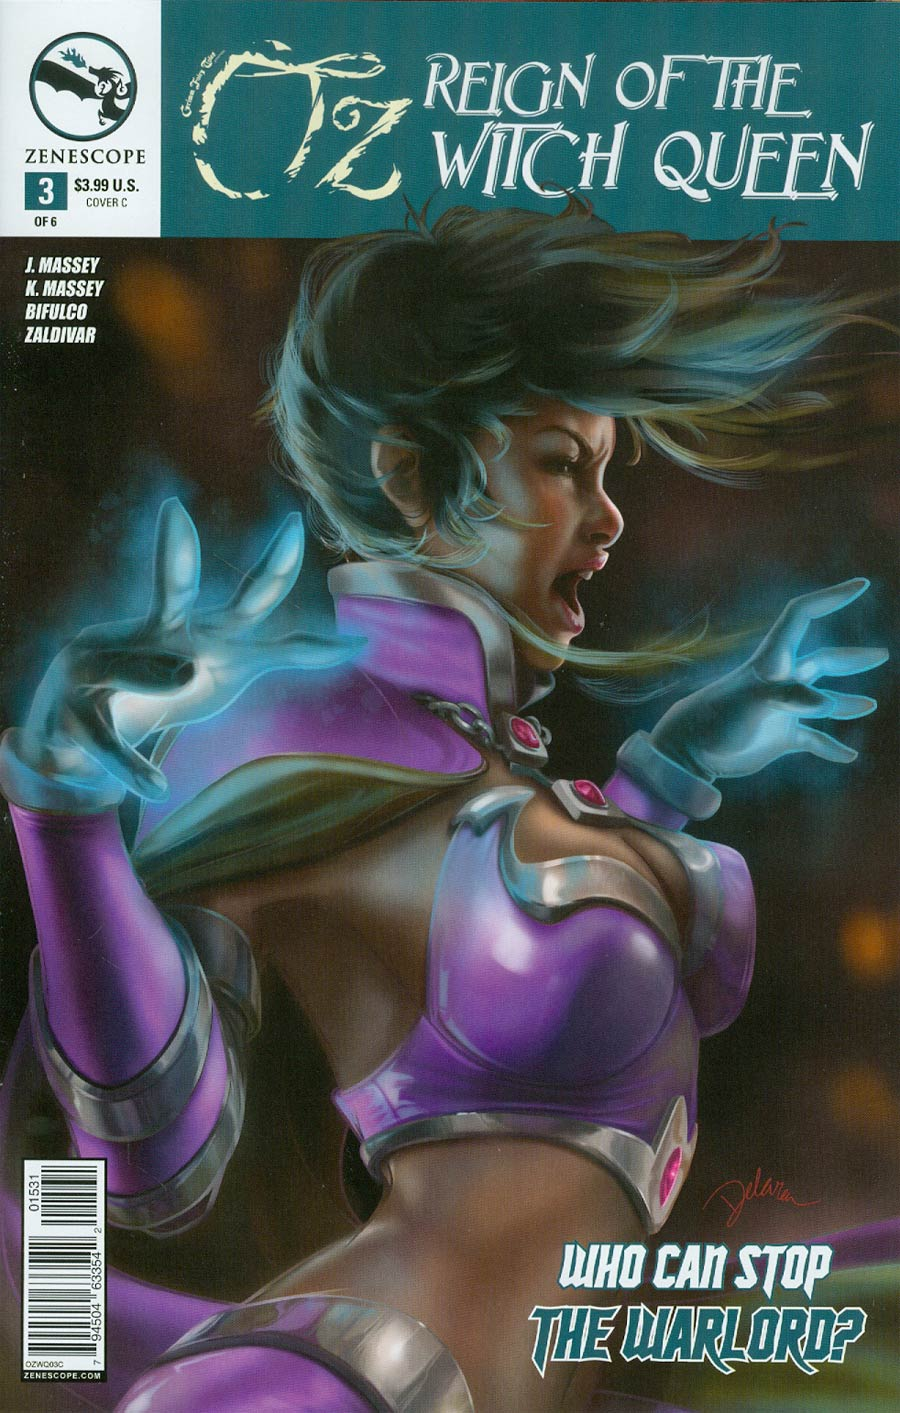 Grimm Fairy Tales Presents Oz Reign Of The Witch Queen #3 Cover C Cris Delara